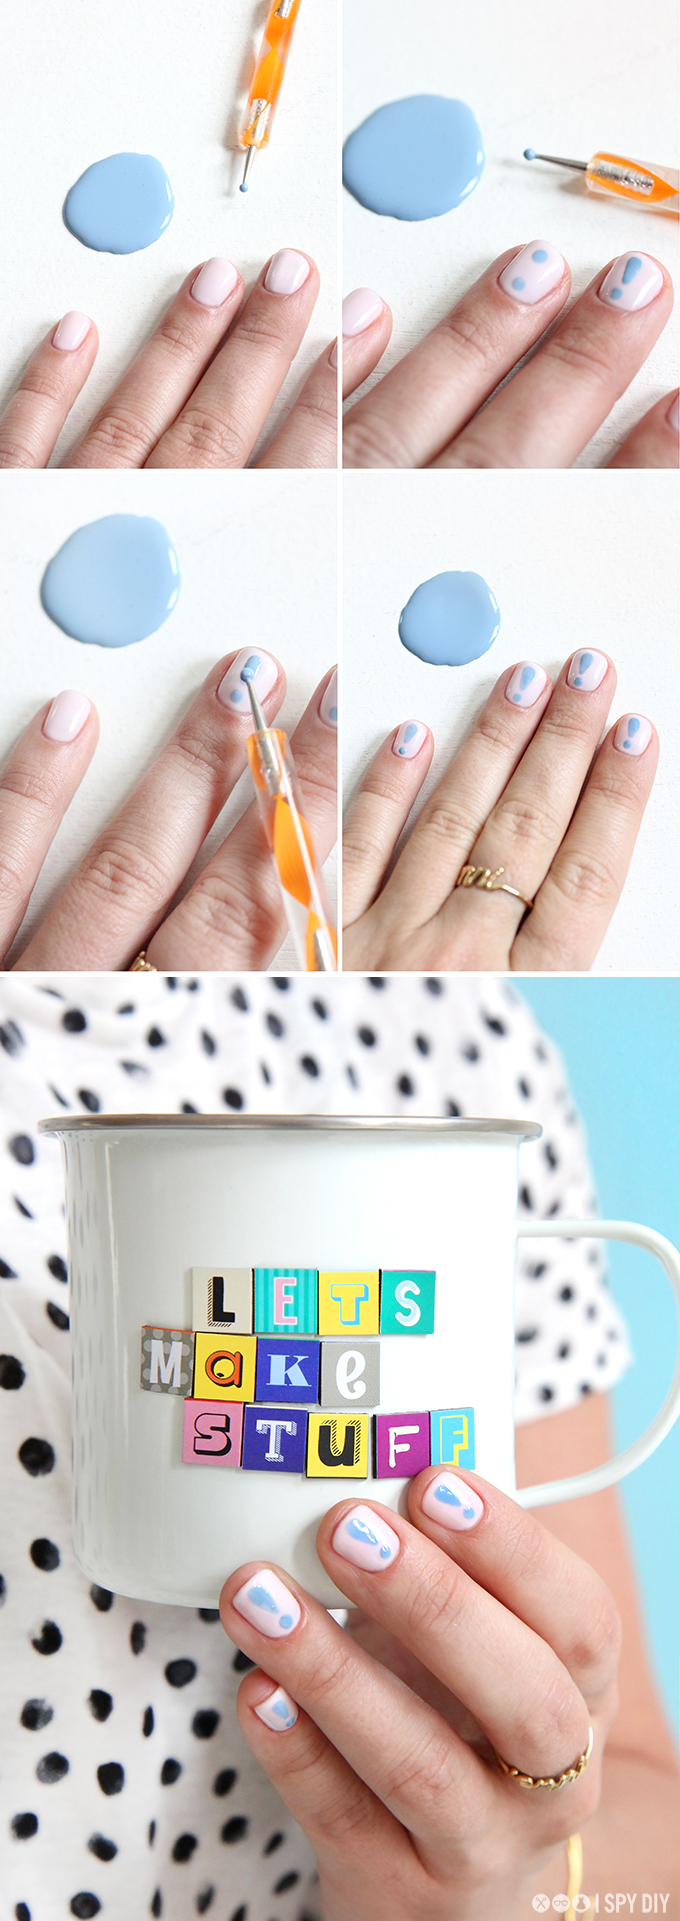 ispydiy_exclamationnails_steps